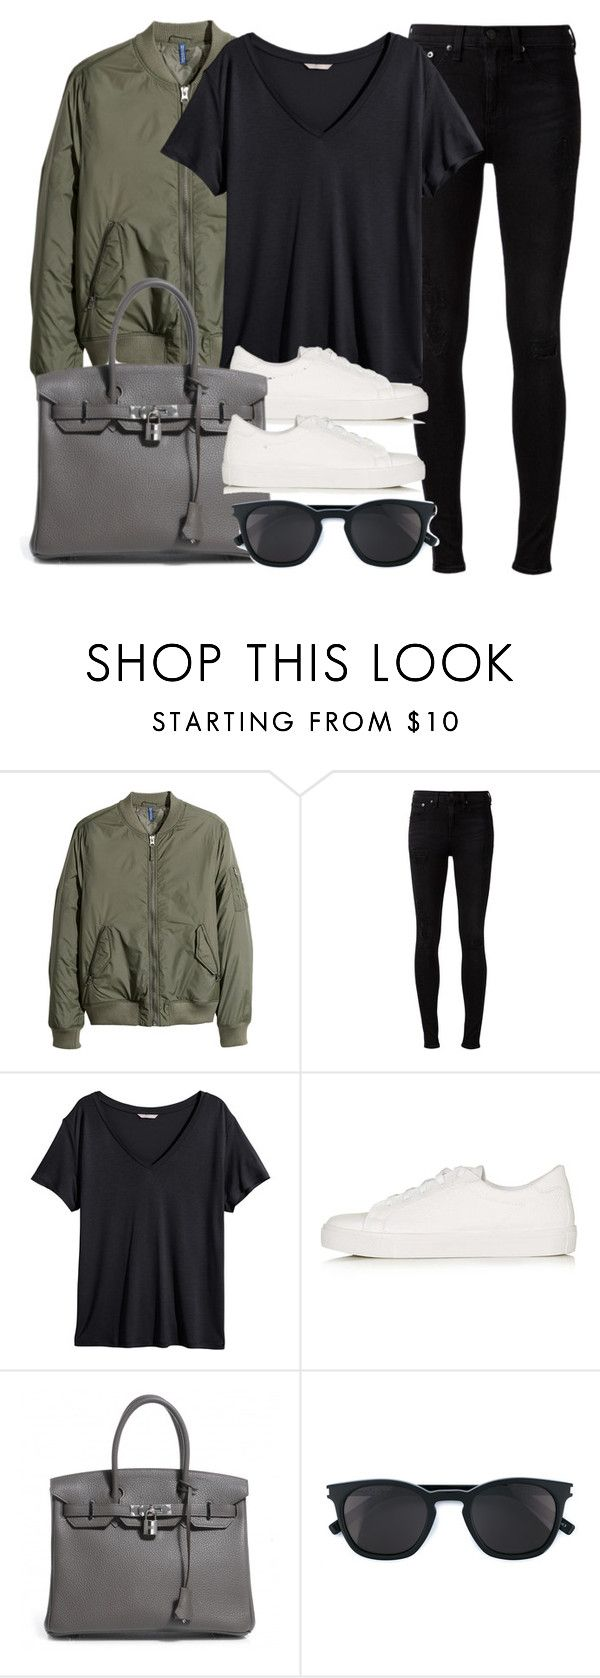 """Style #11323"" by vany-alvarado ❤ liked on Polyvore featuring H&M, rag & bone, Topshop, Hermès and Yves Saint Laurent"